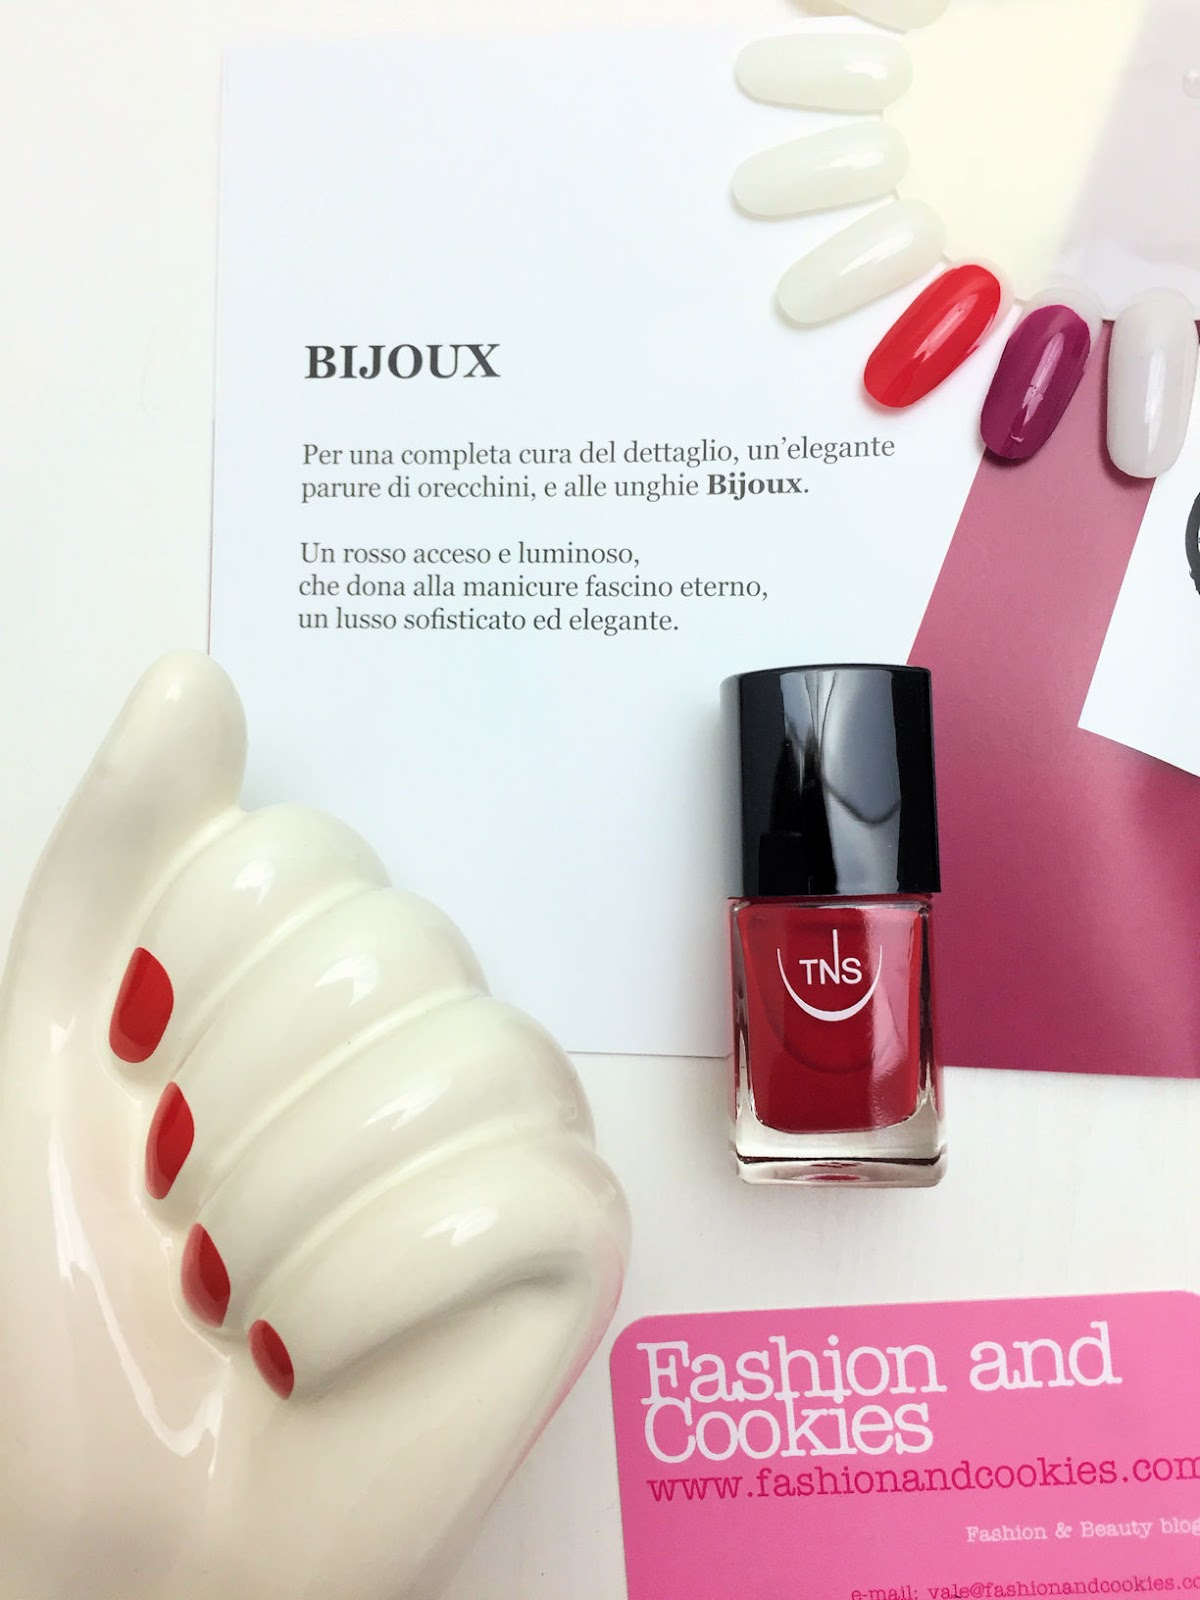 BON TON bijoux nail polish from TNS Firenze on Fashion and Cookies beauty blog, beauty blogger